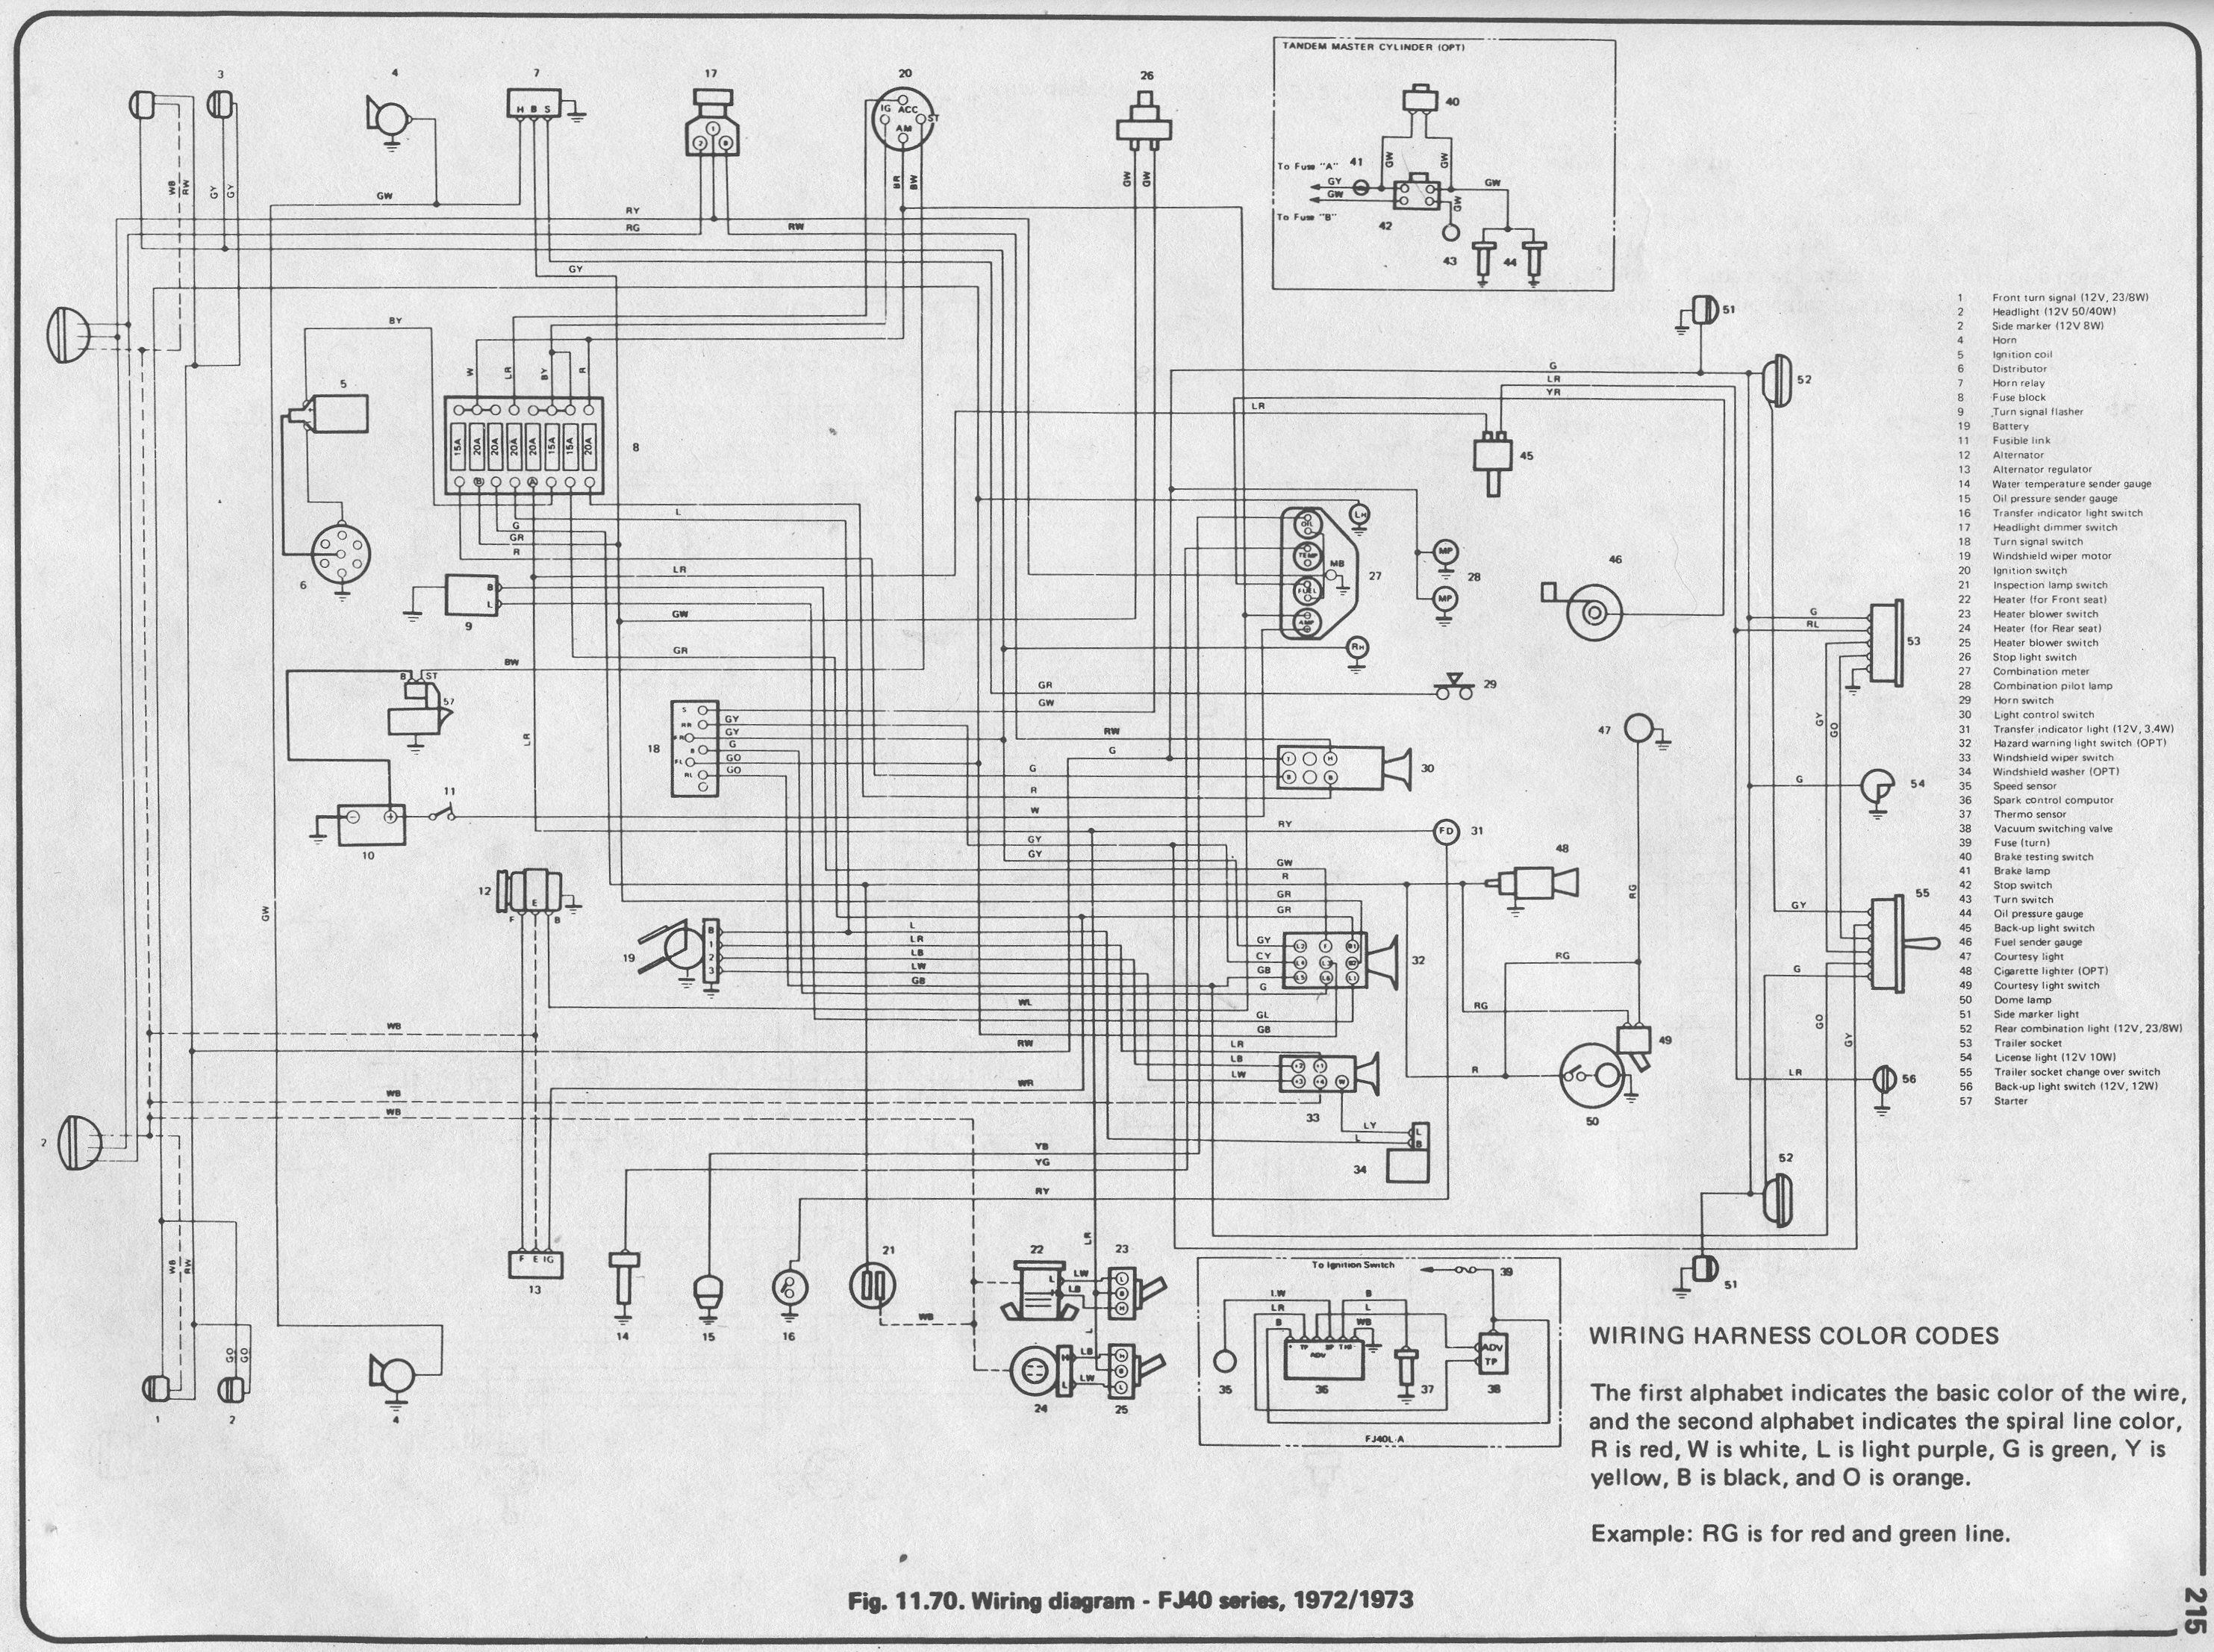 Haynes1973FJ40 fj45 wiring diagram wanted offroad express fj40 wiring diagram at readyjetset.co